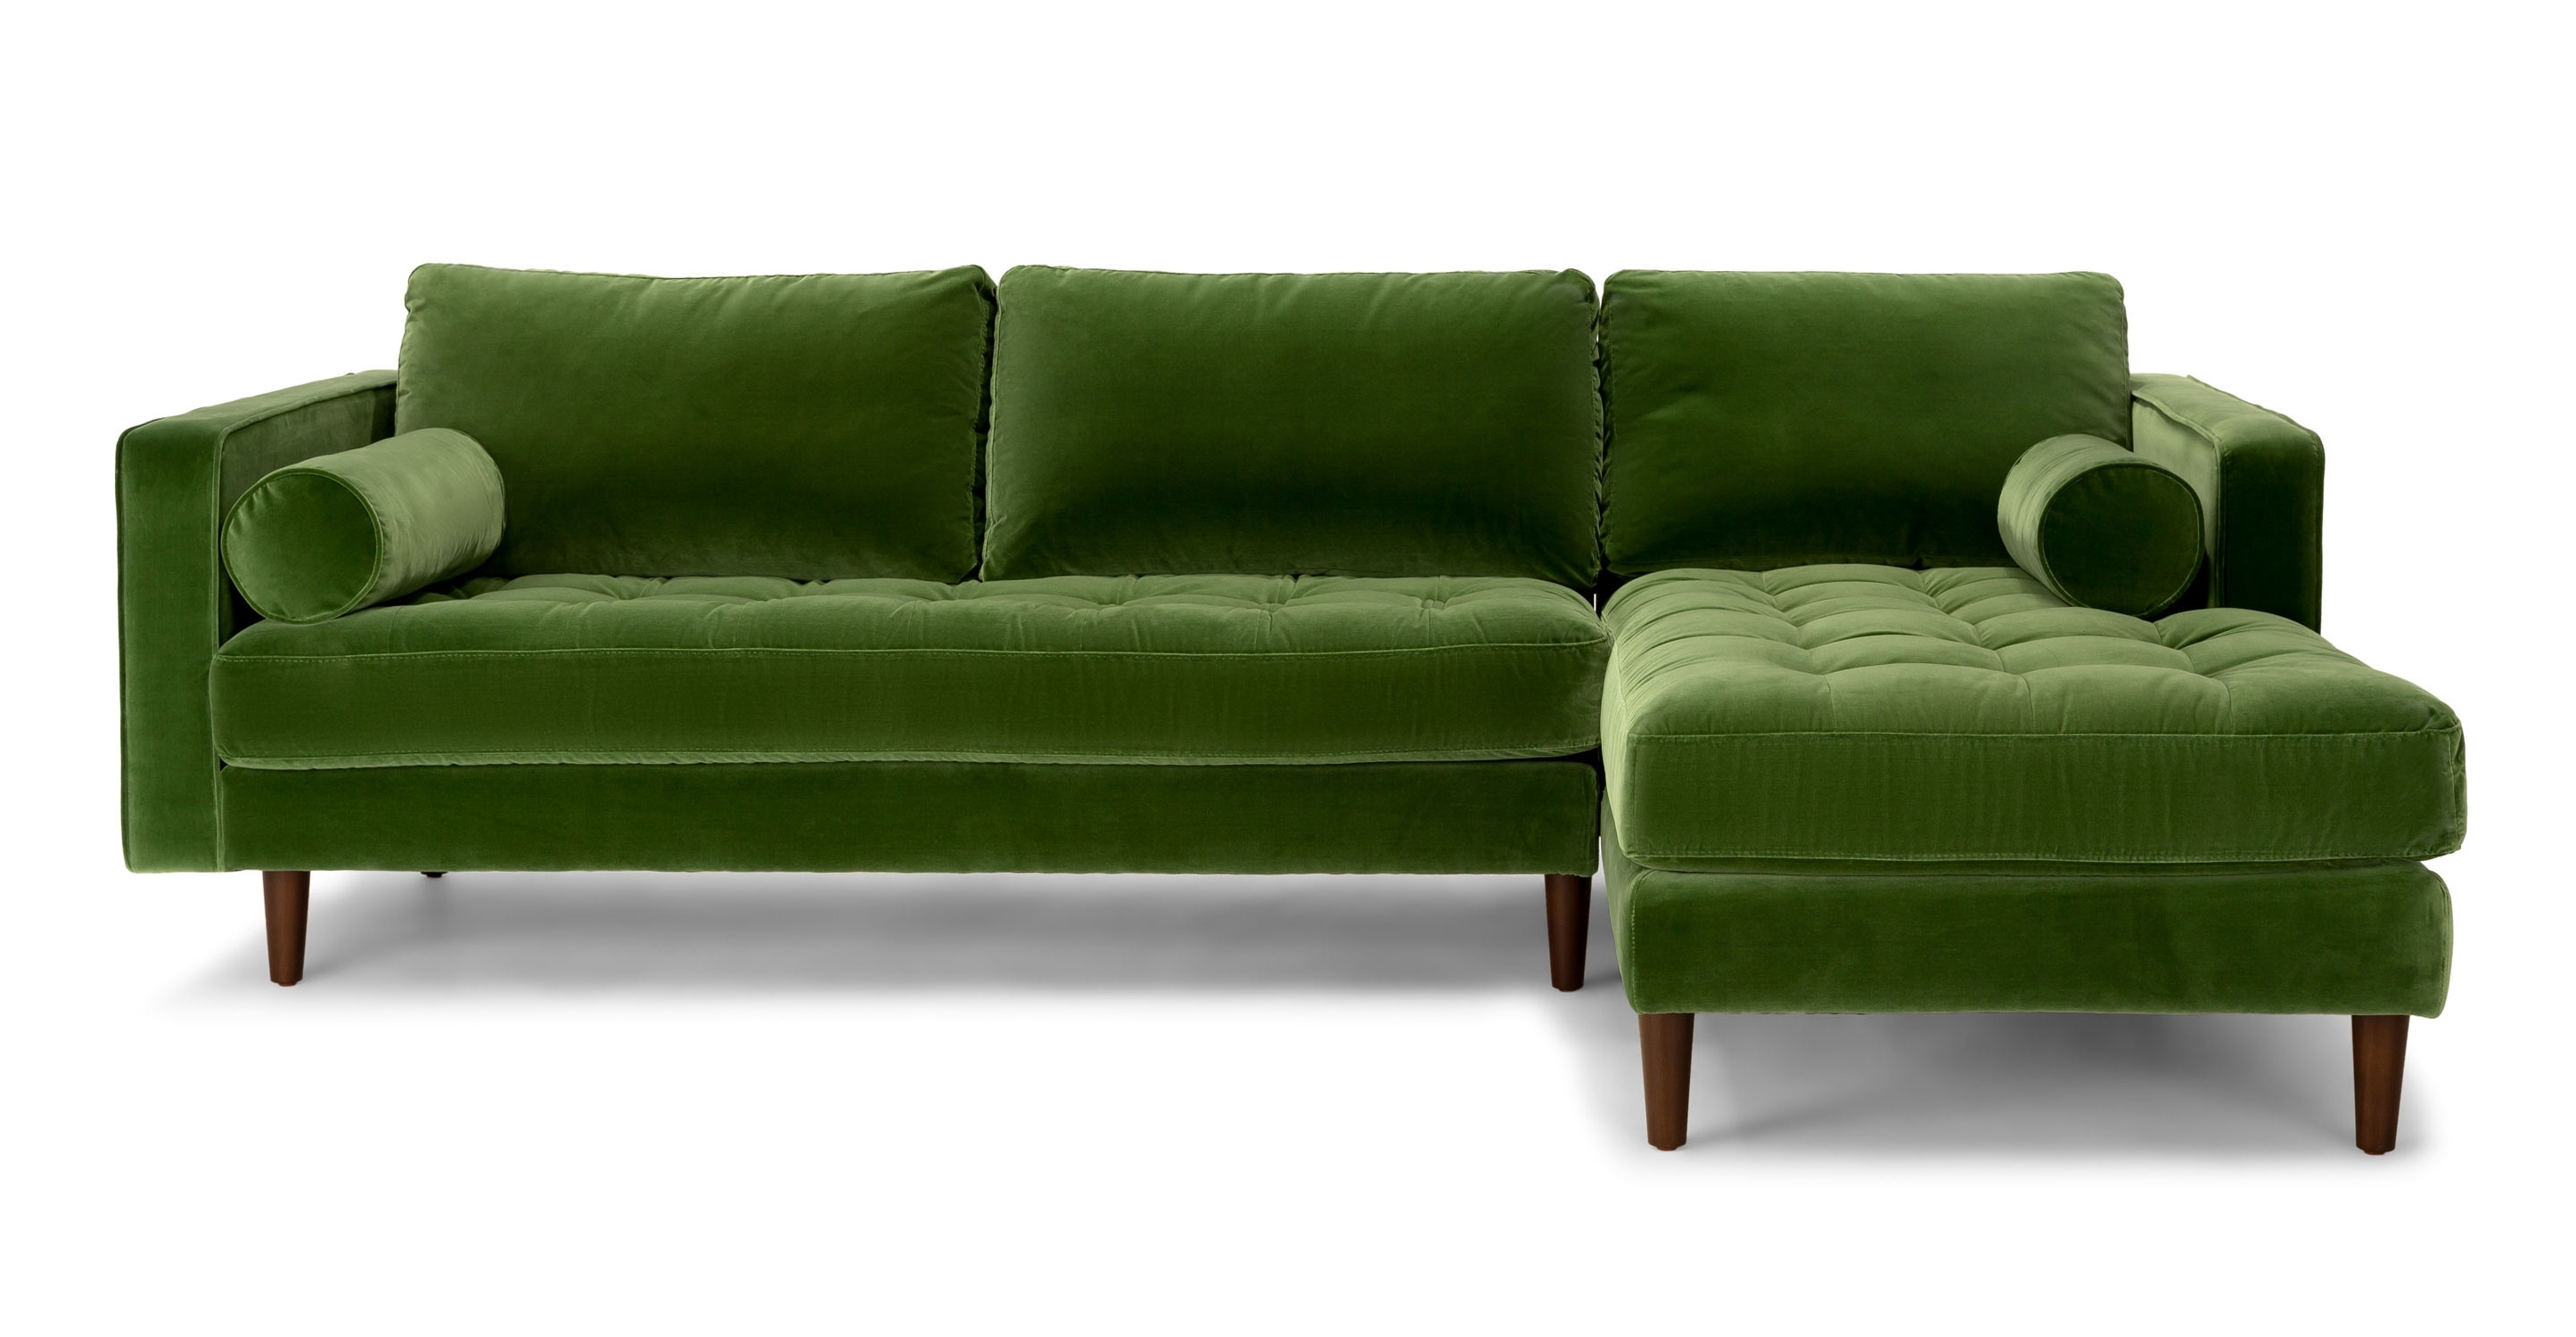 Green Sectional Sofas With Chaise Throughout Most Current Green Sectional Sofa With Chaise – Hotelsbacau (Gallery 6 of 20)